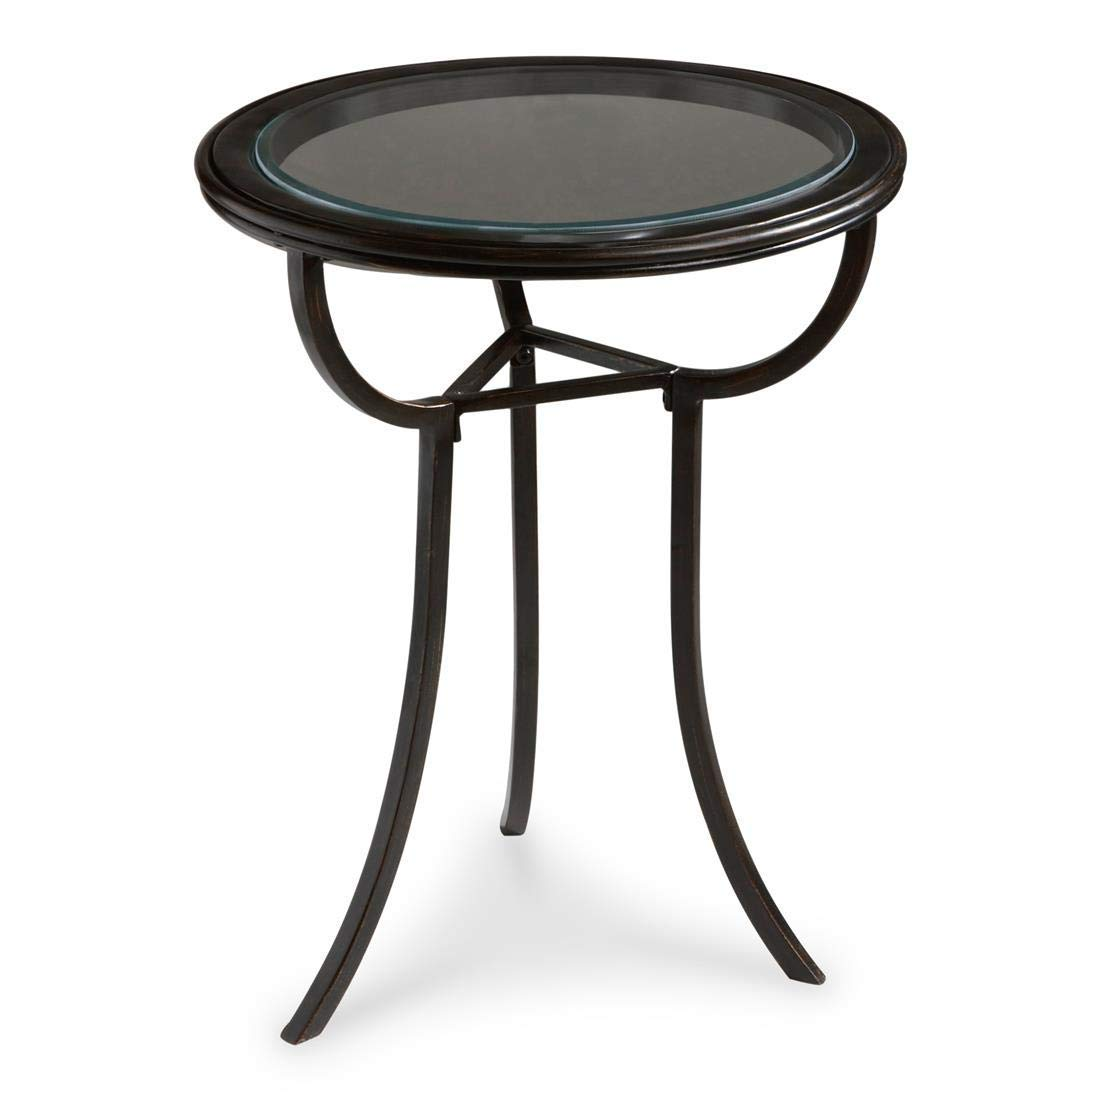 round glass accent table find fdyaabunjt bella green mosaic outdoor get quotations metalworks black aluminum tempered butler danley transitional thin cabinet bar living room